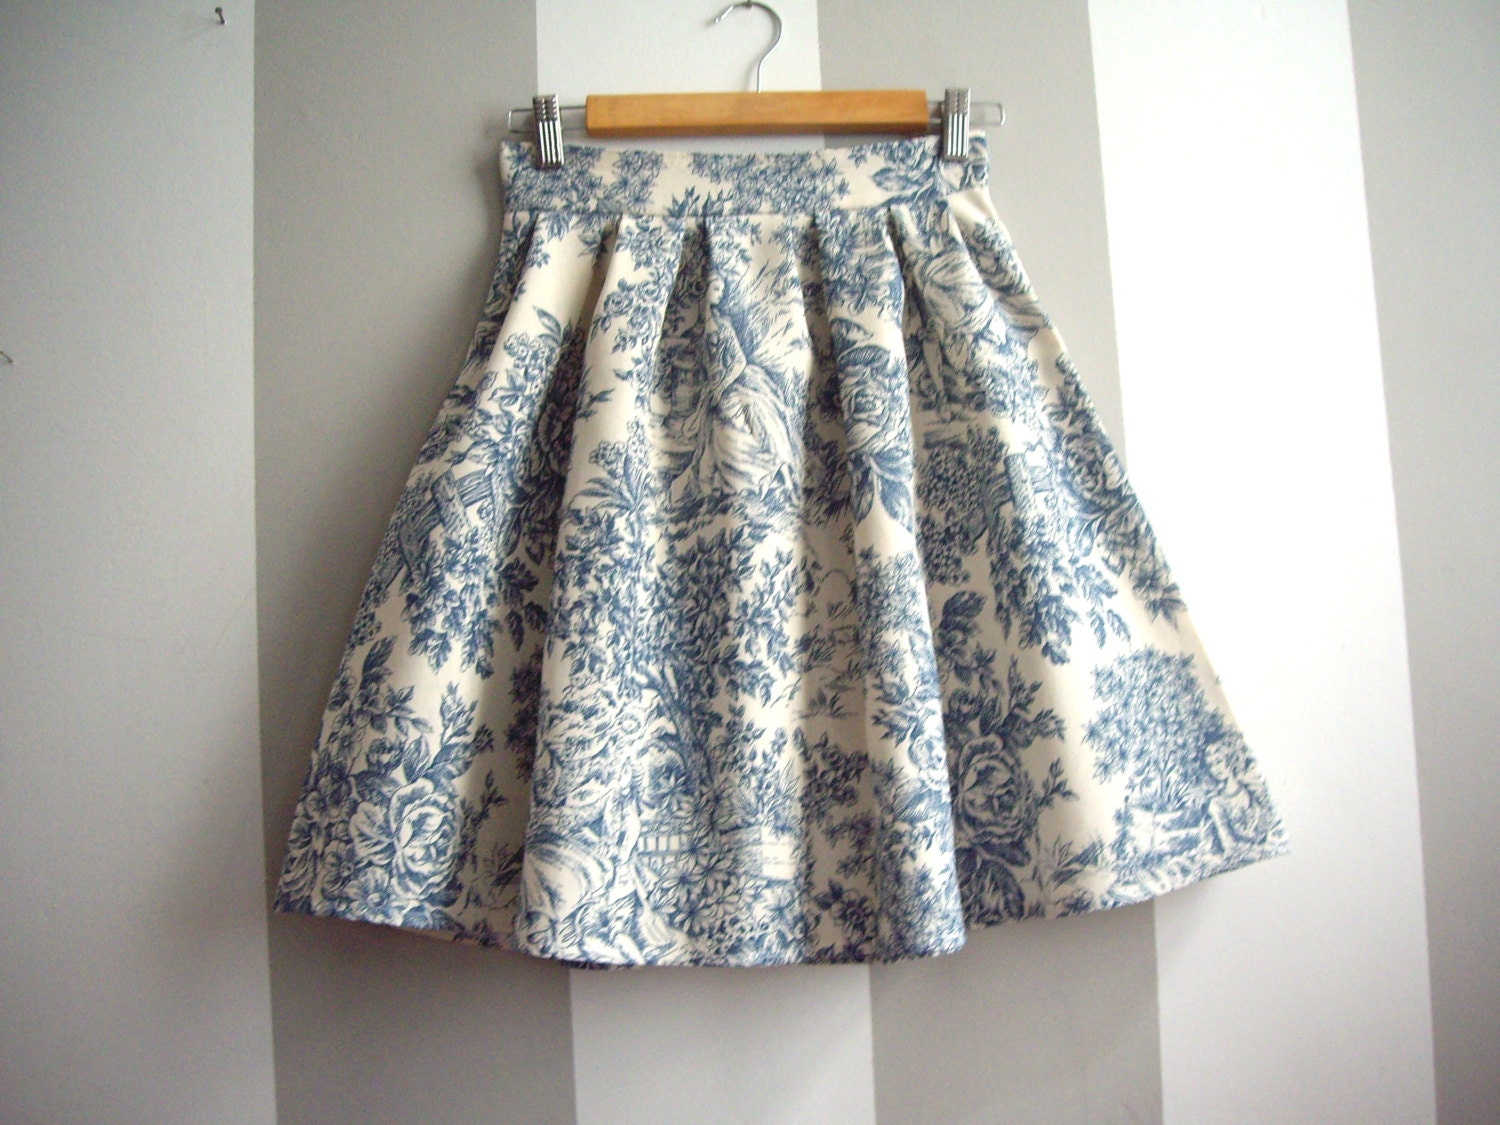 Toile de Jouy Skirt // Blue and Cream Toile High Waisted Skirt